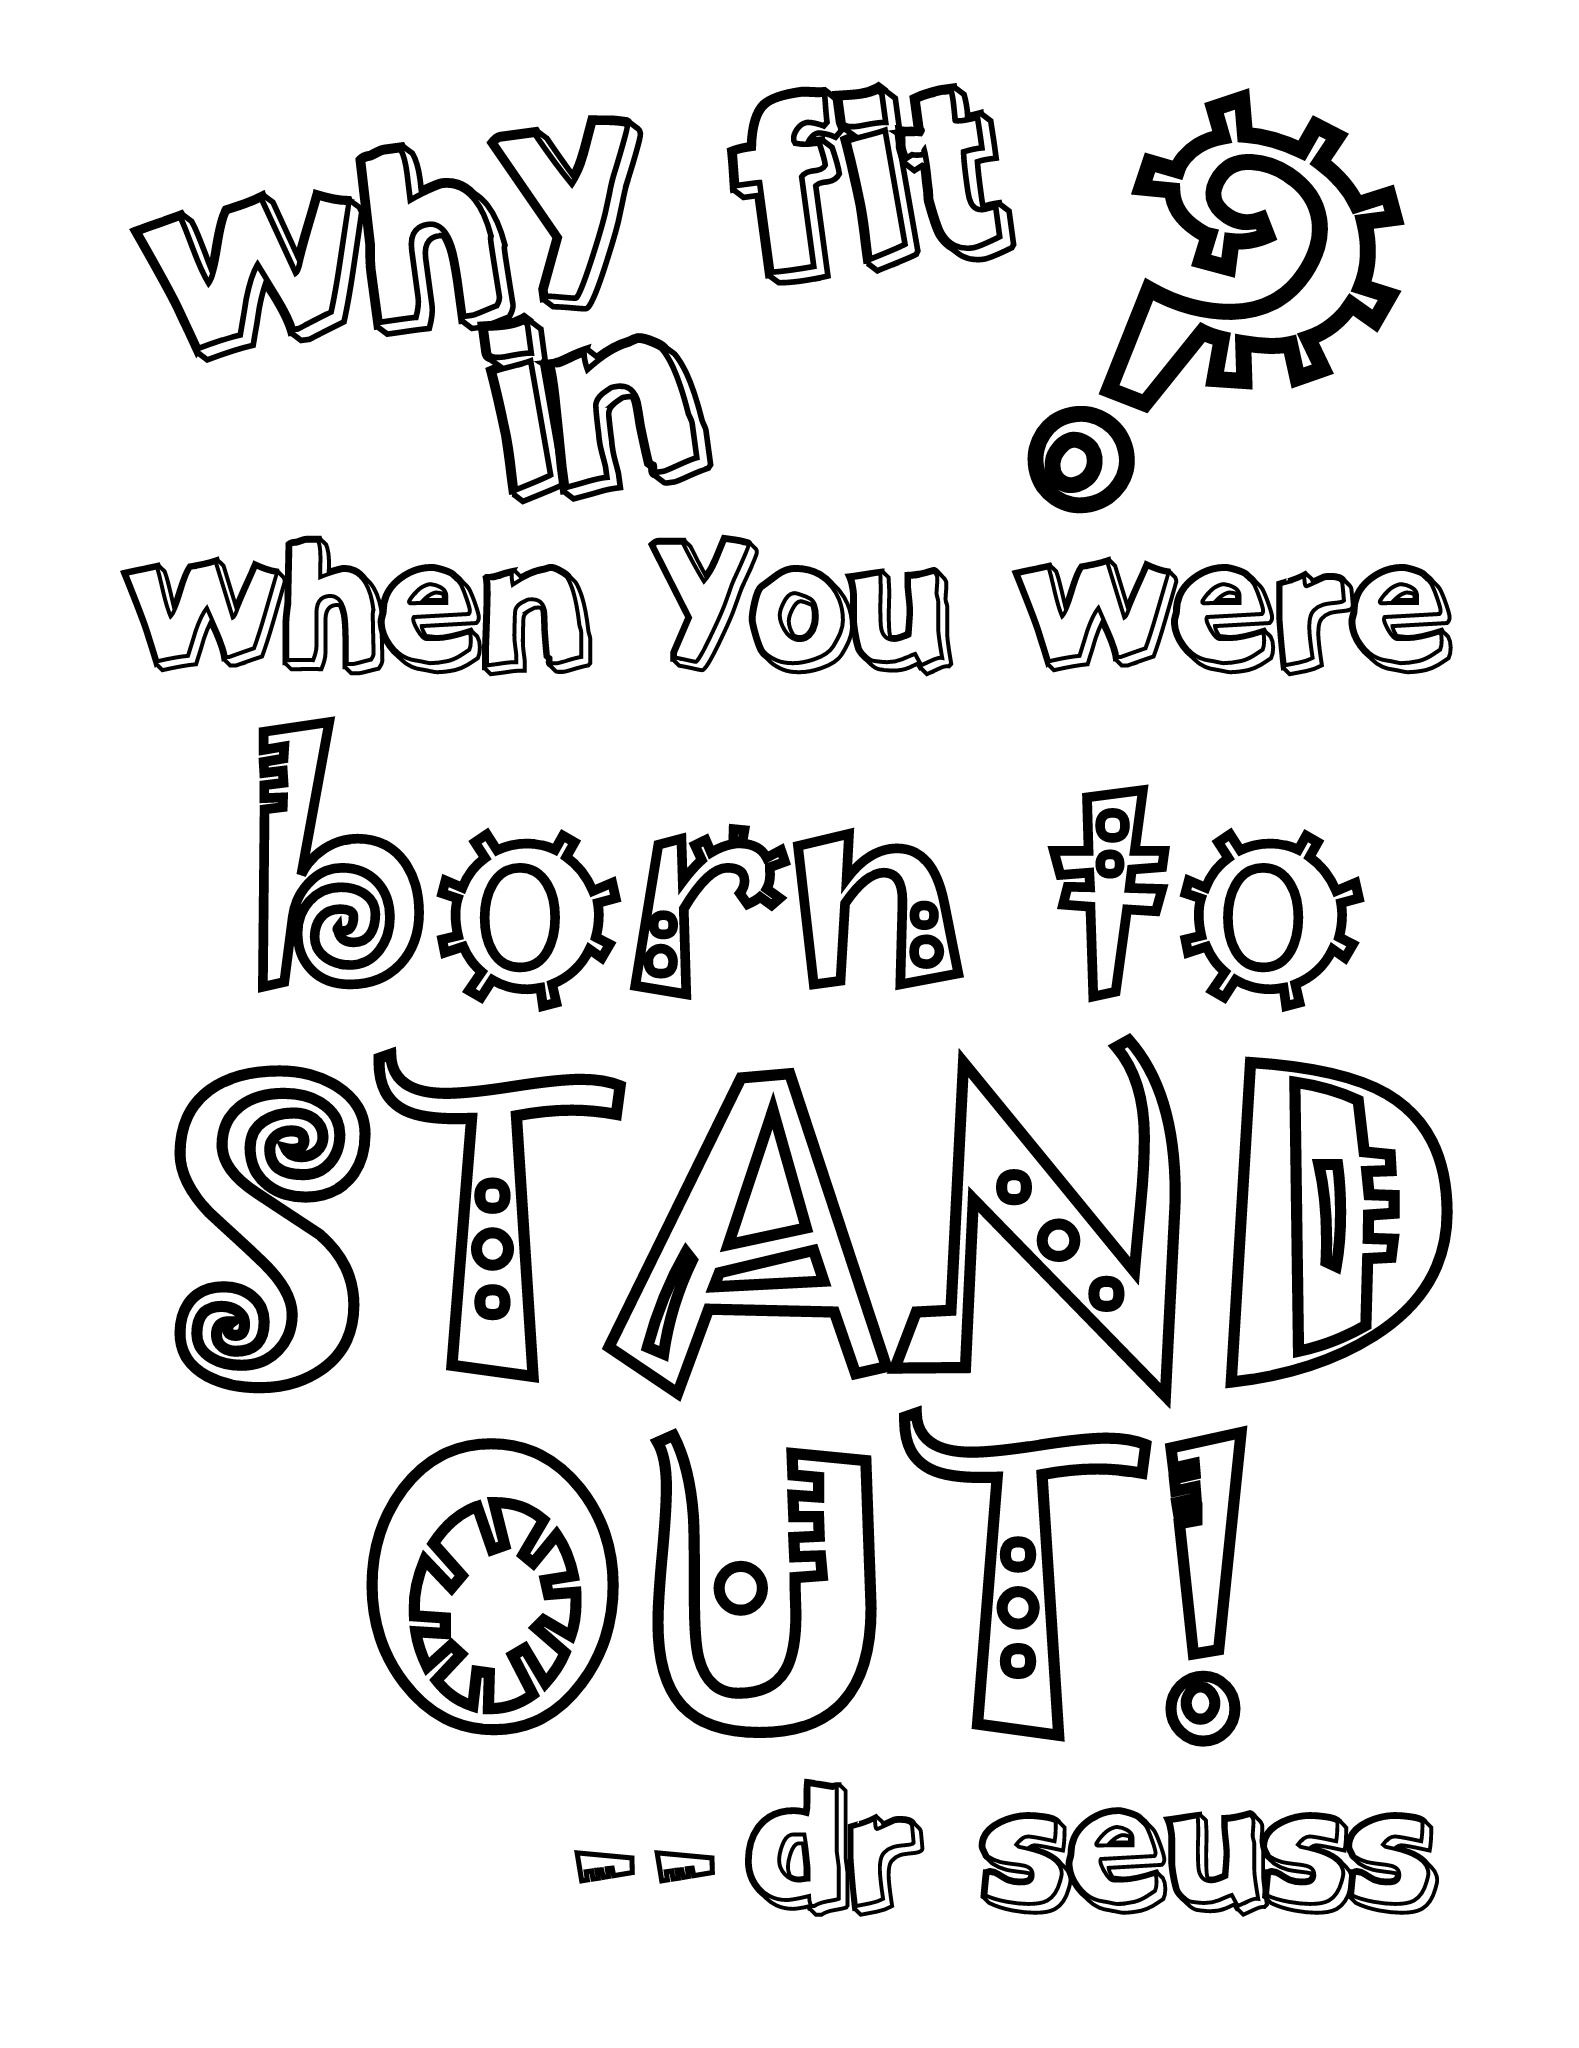 Coloring pages with quotes - Seuss Coloring Page 3 Jpg Google Drive